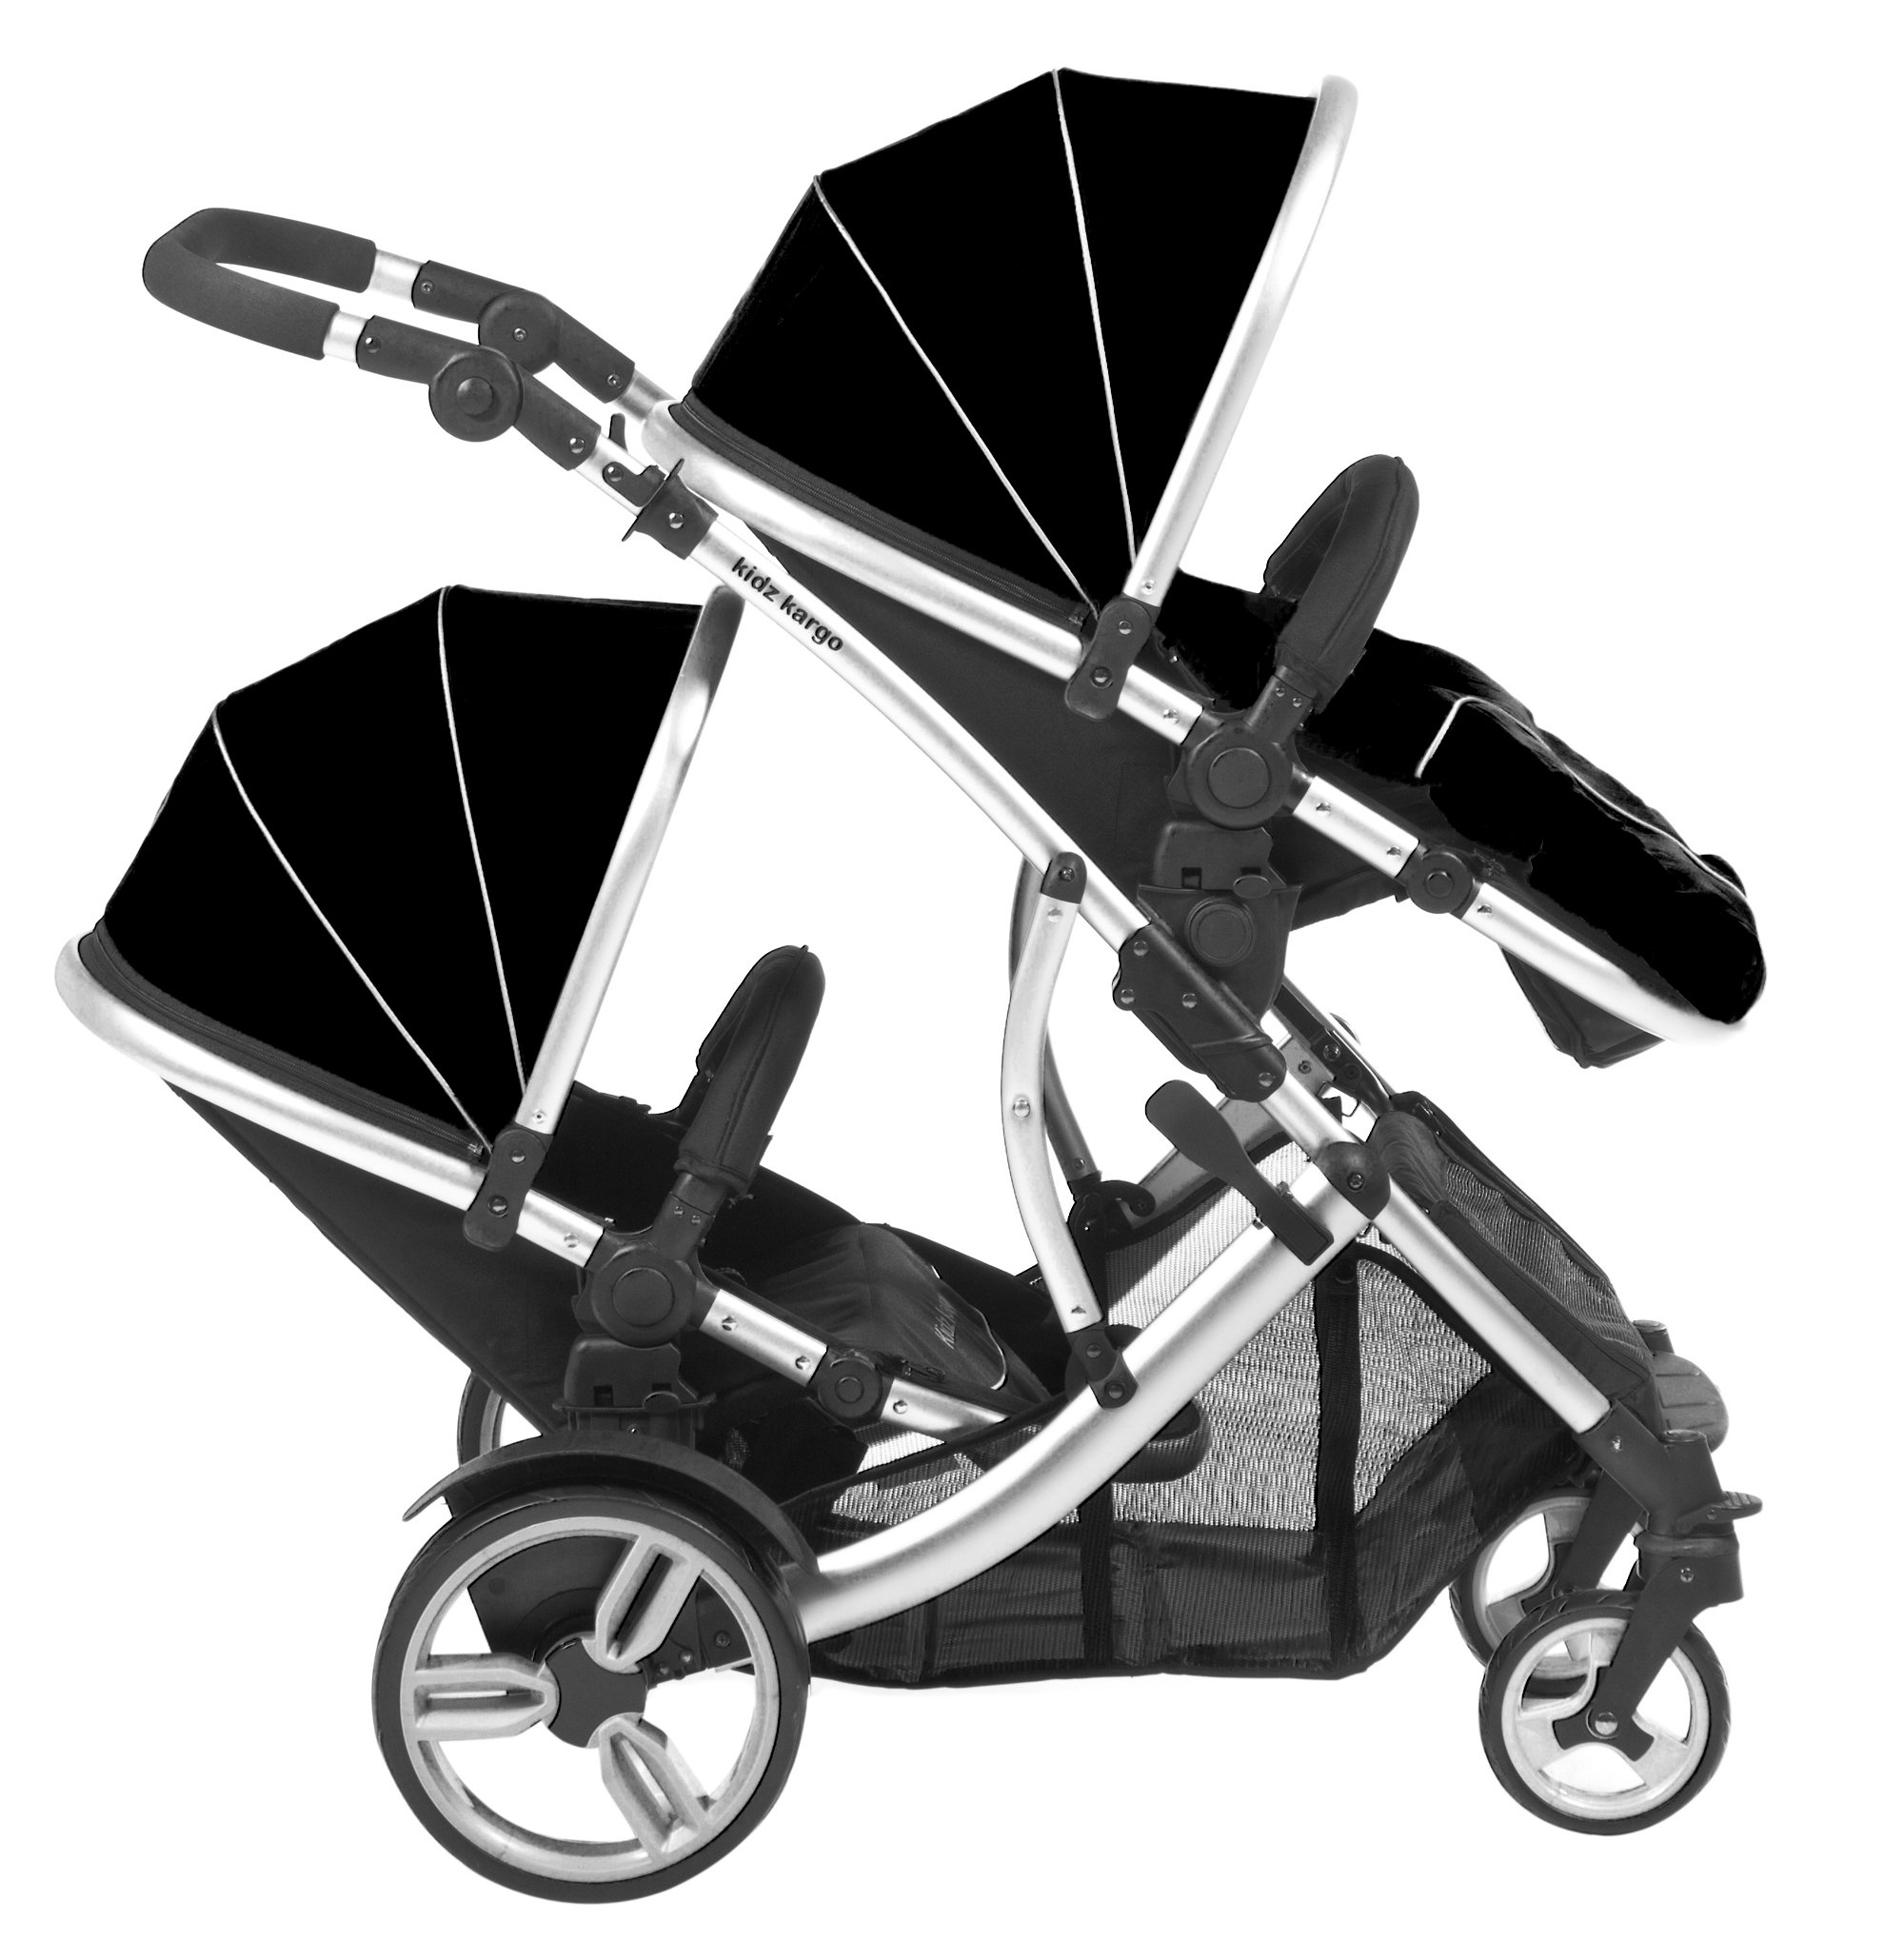 Duellette 21 BS combi Double Pushchair Twin Tandem complete carrycot/converts to seat unit. Free rain covers and 2 free Black footmuffs. Midnight Black by Kids Kargo Kids Kargo Demo video please see link https://www.youtube.com/watch?v=5L8eKWGqoso Various seat positions. Accommodates 1 or 2 car seats Carrycot converts to seat unit incl mattress. Toddler seat from 6 months 4